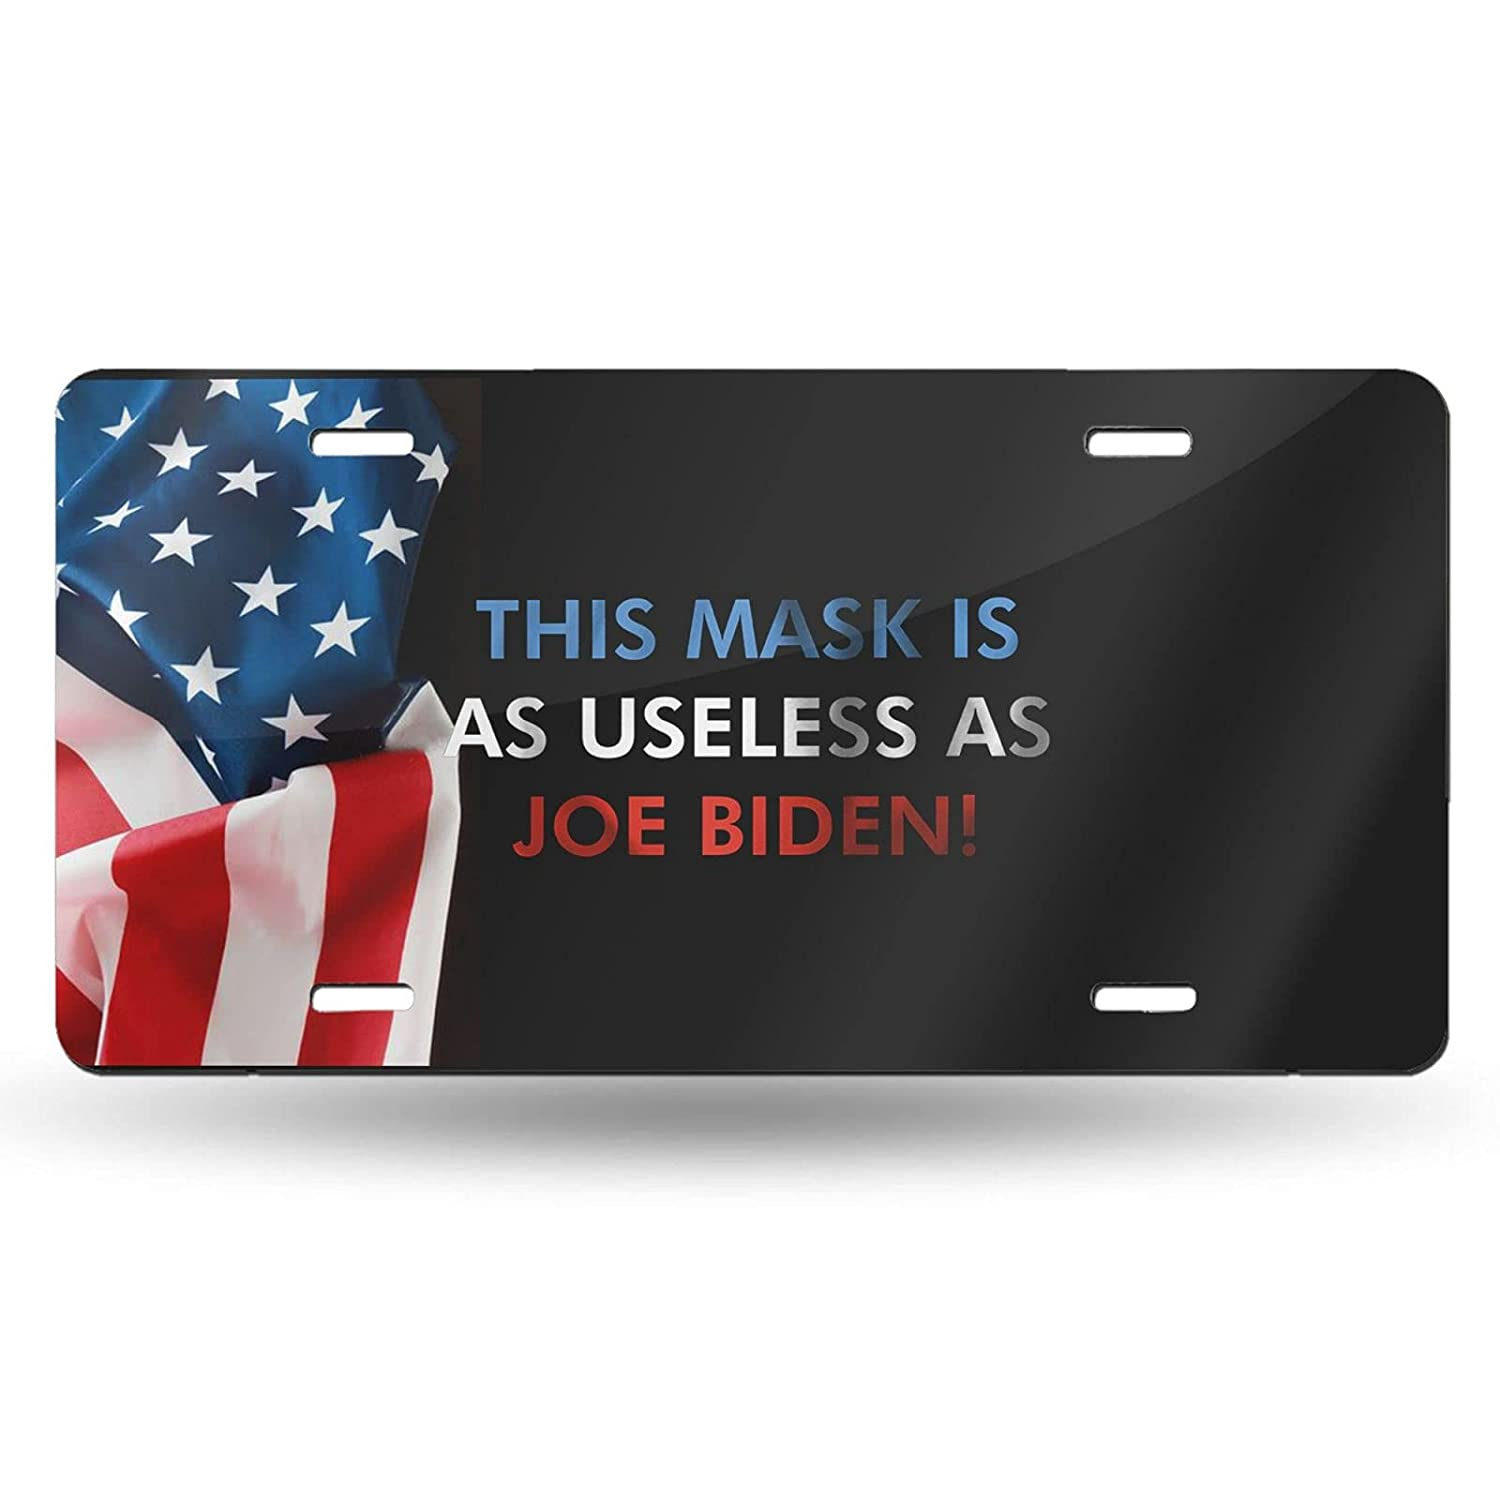 This Mask Popular brand in the world is As Useless Biden Joe Plate License Personalized Baltimore Mall